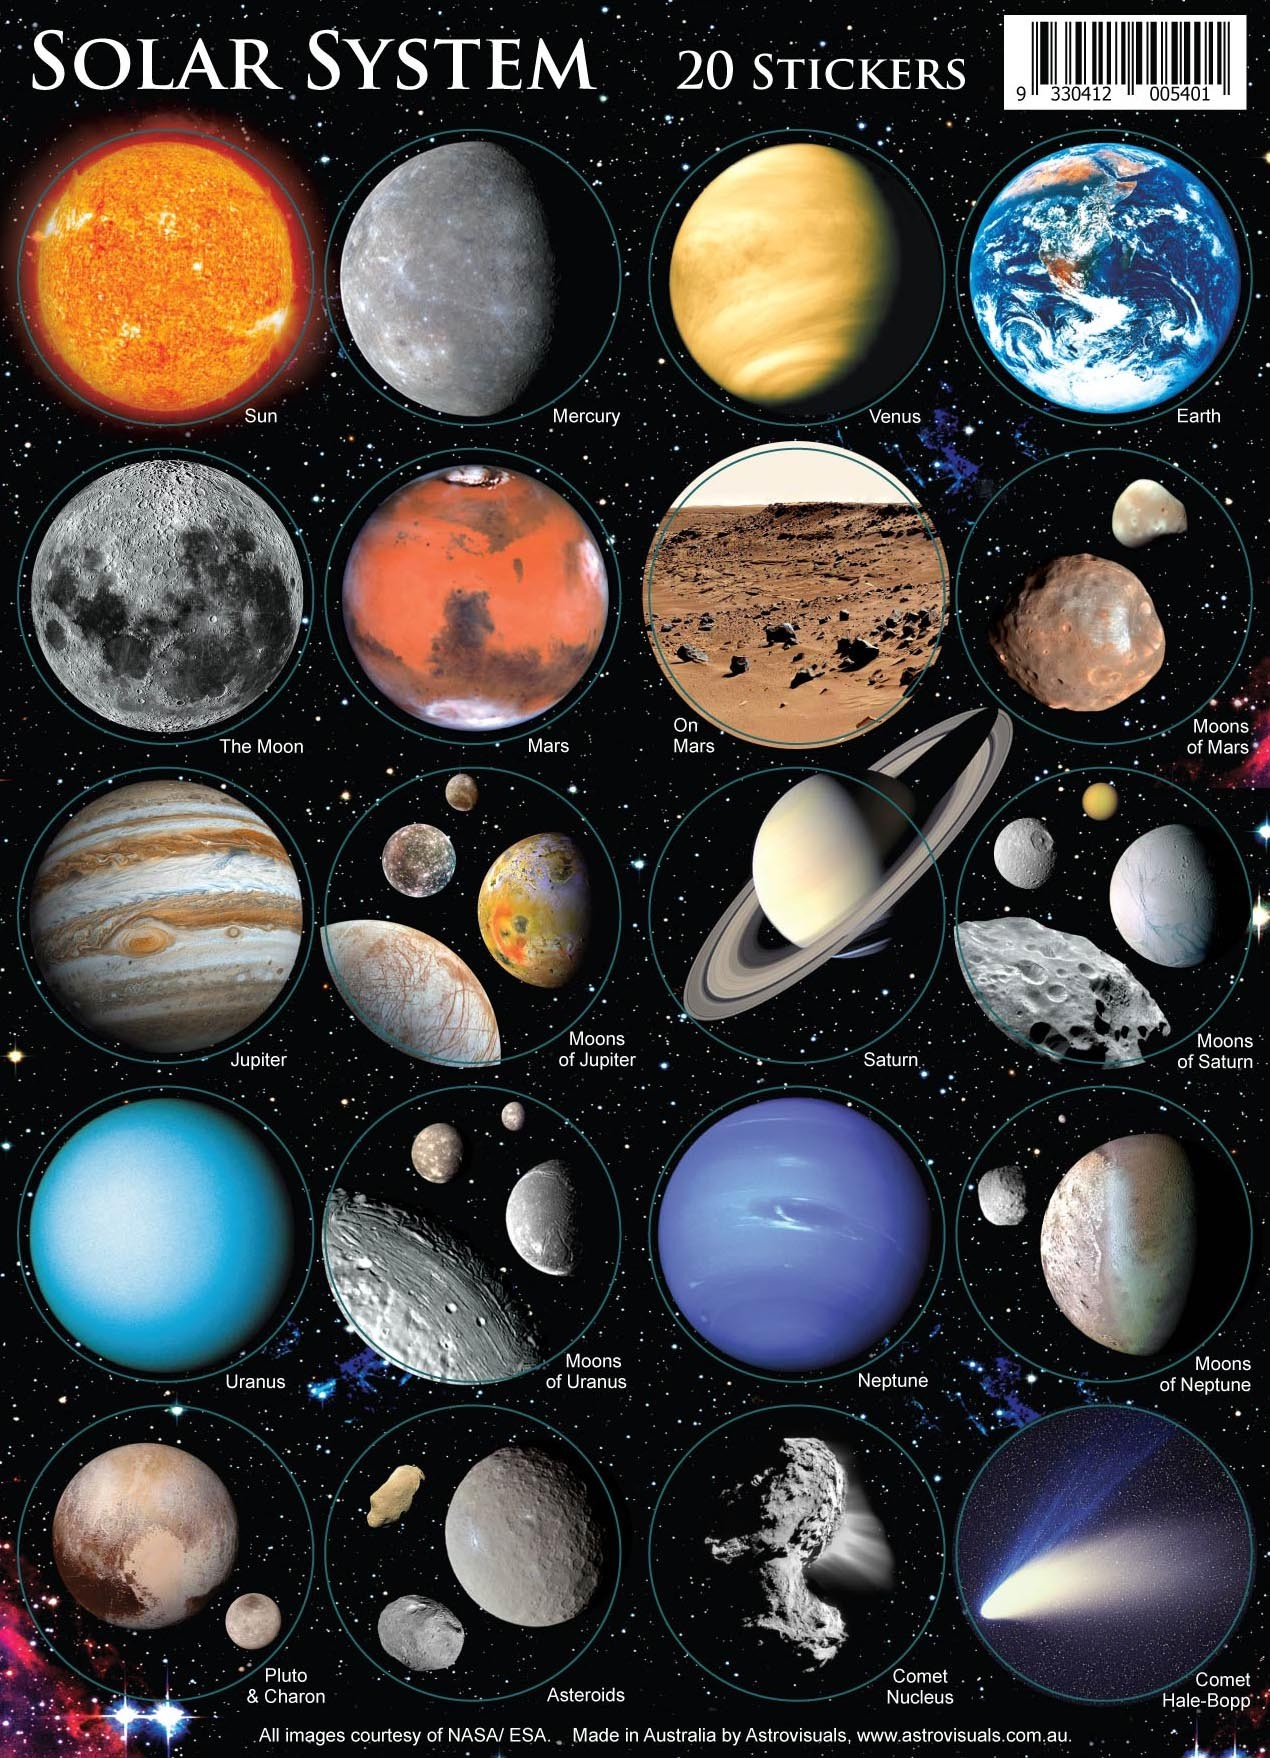 Astrovisuals Solar System Set of 20 Stickers